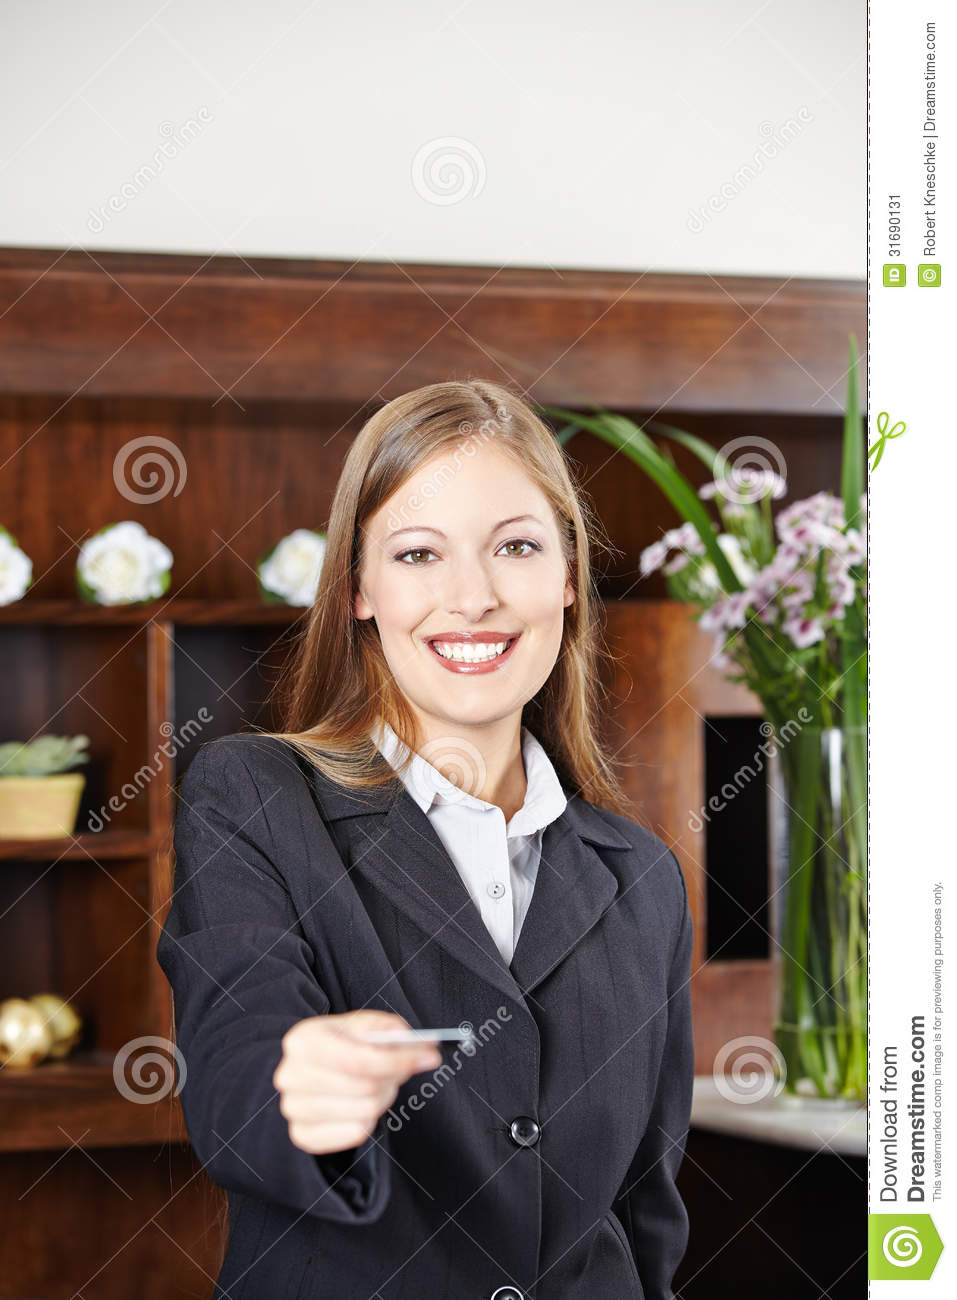 Receptionist At Hotel Offering Key Card Stock Image ...